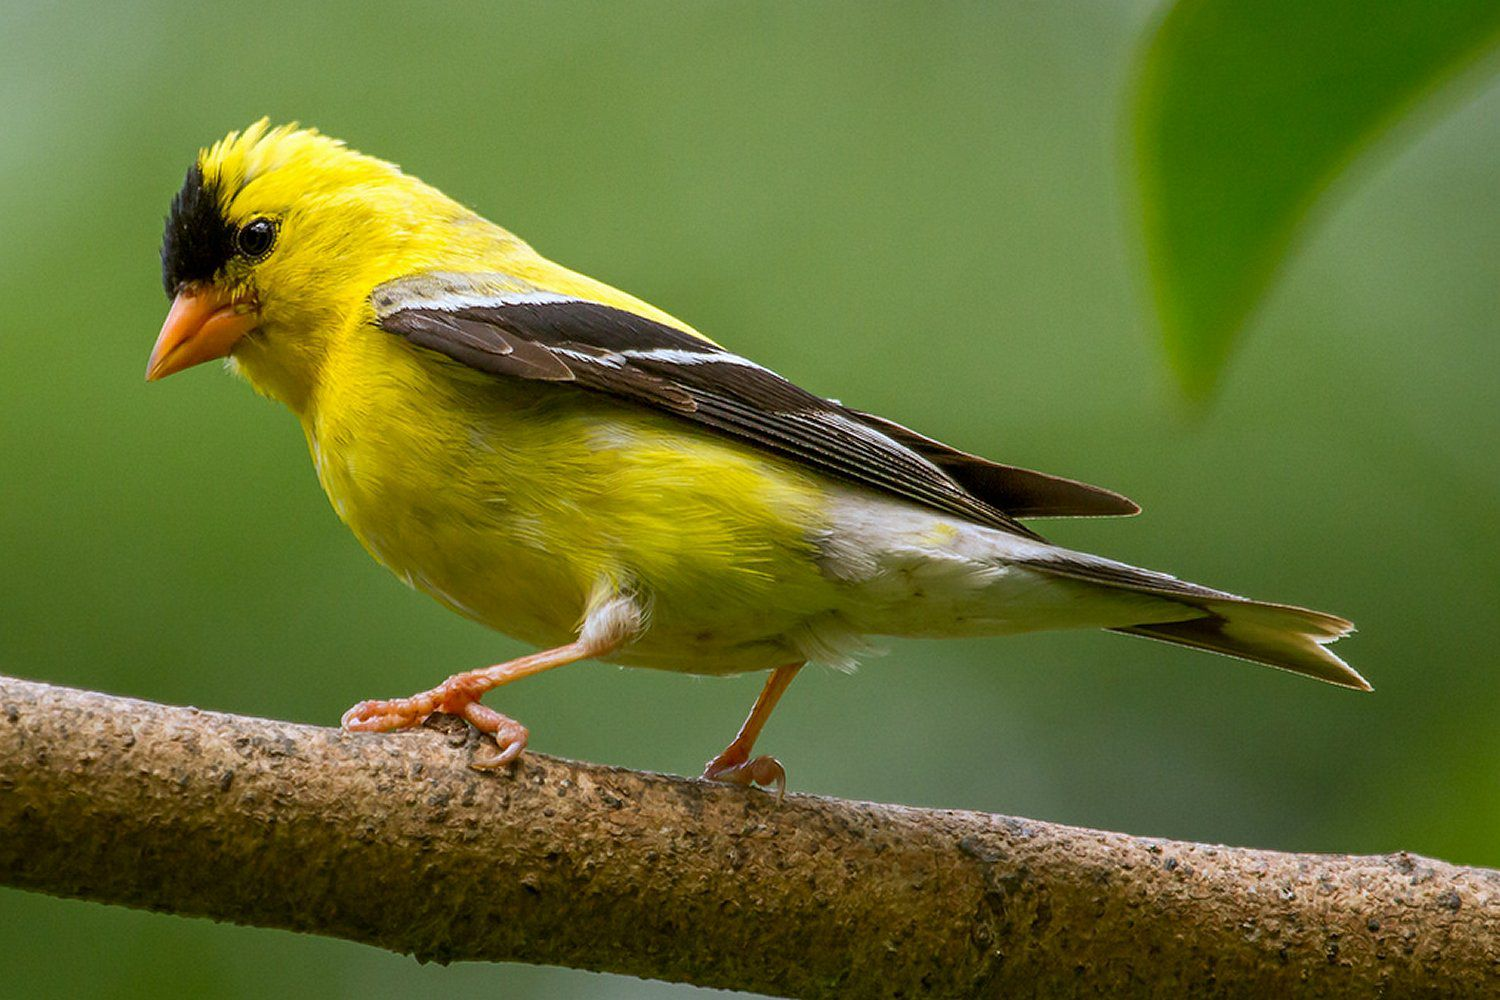 Songbird Pictures Closeups of Passerines and Non-Passerines American goldfinch female photo